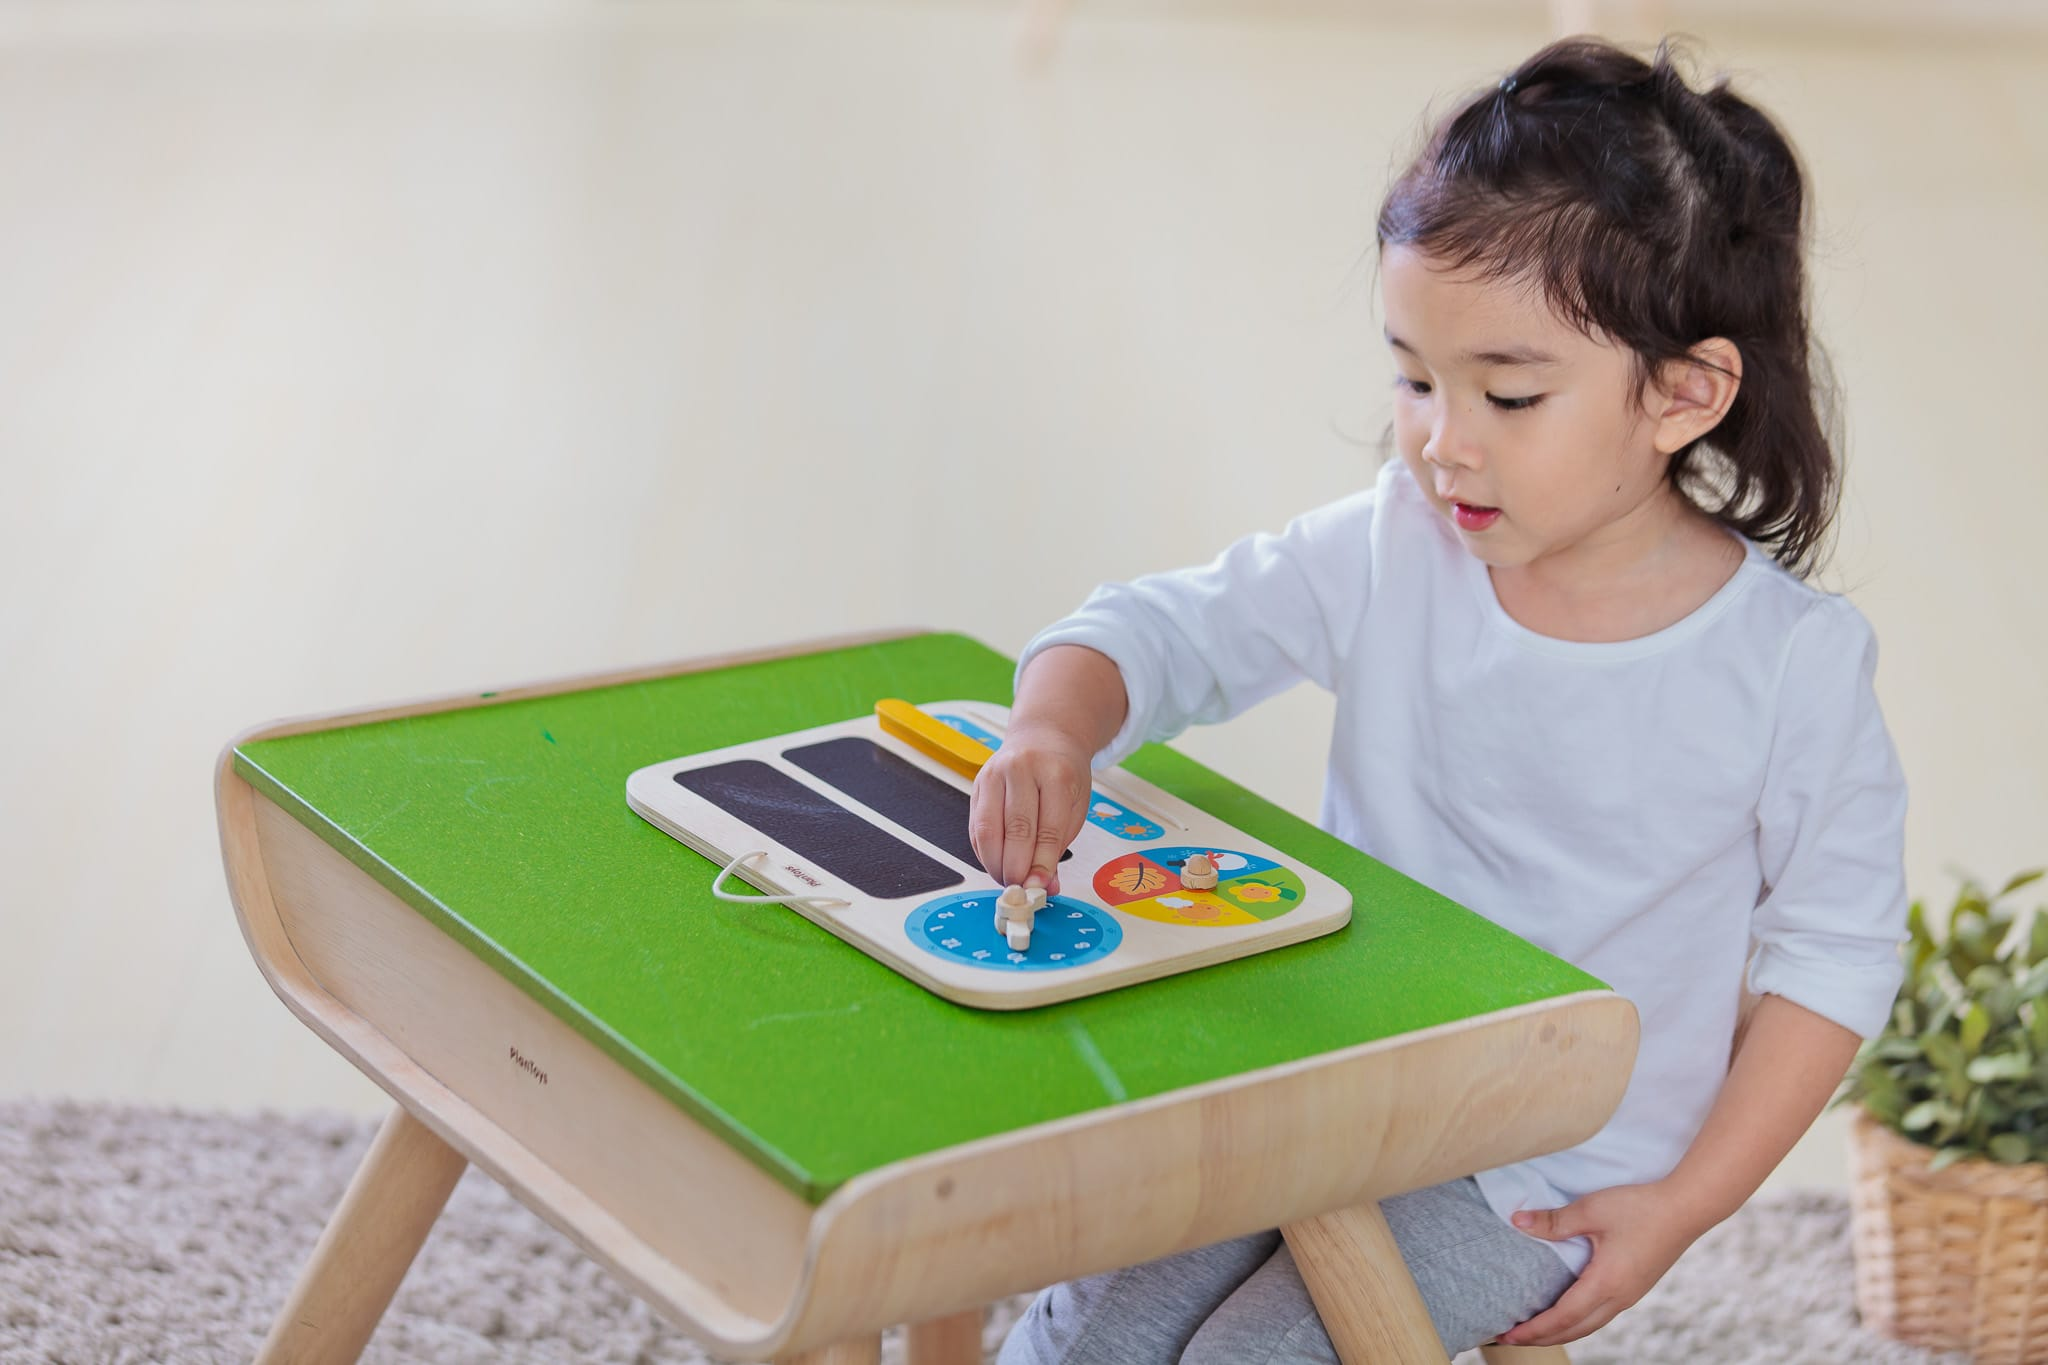 5359_PlanToys_MY_FIRST_CALENDAR_Learning_and_Education_Mathematical_Language_and_Communications_Explore_Fine_Motor_3yrs_Wooden_toys_Education_toys_Safety_Toys_Non-toxic_5.jpg